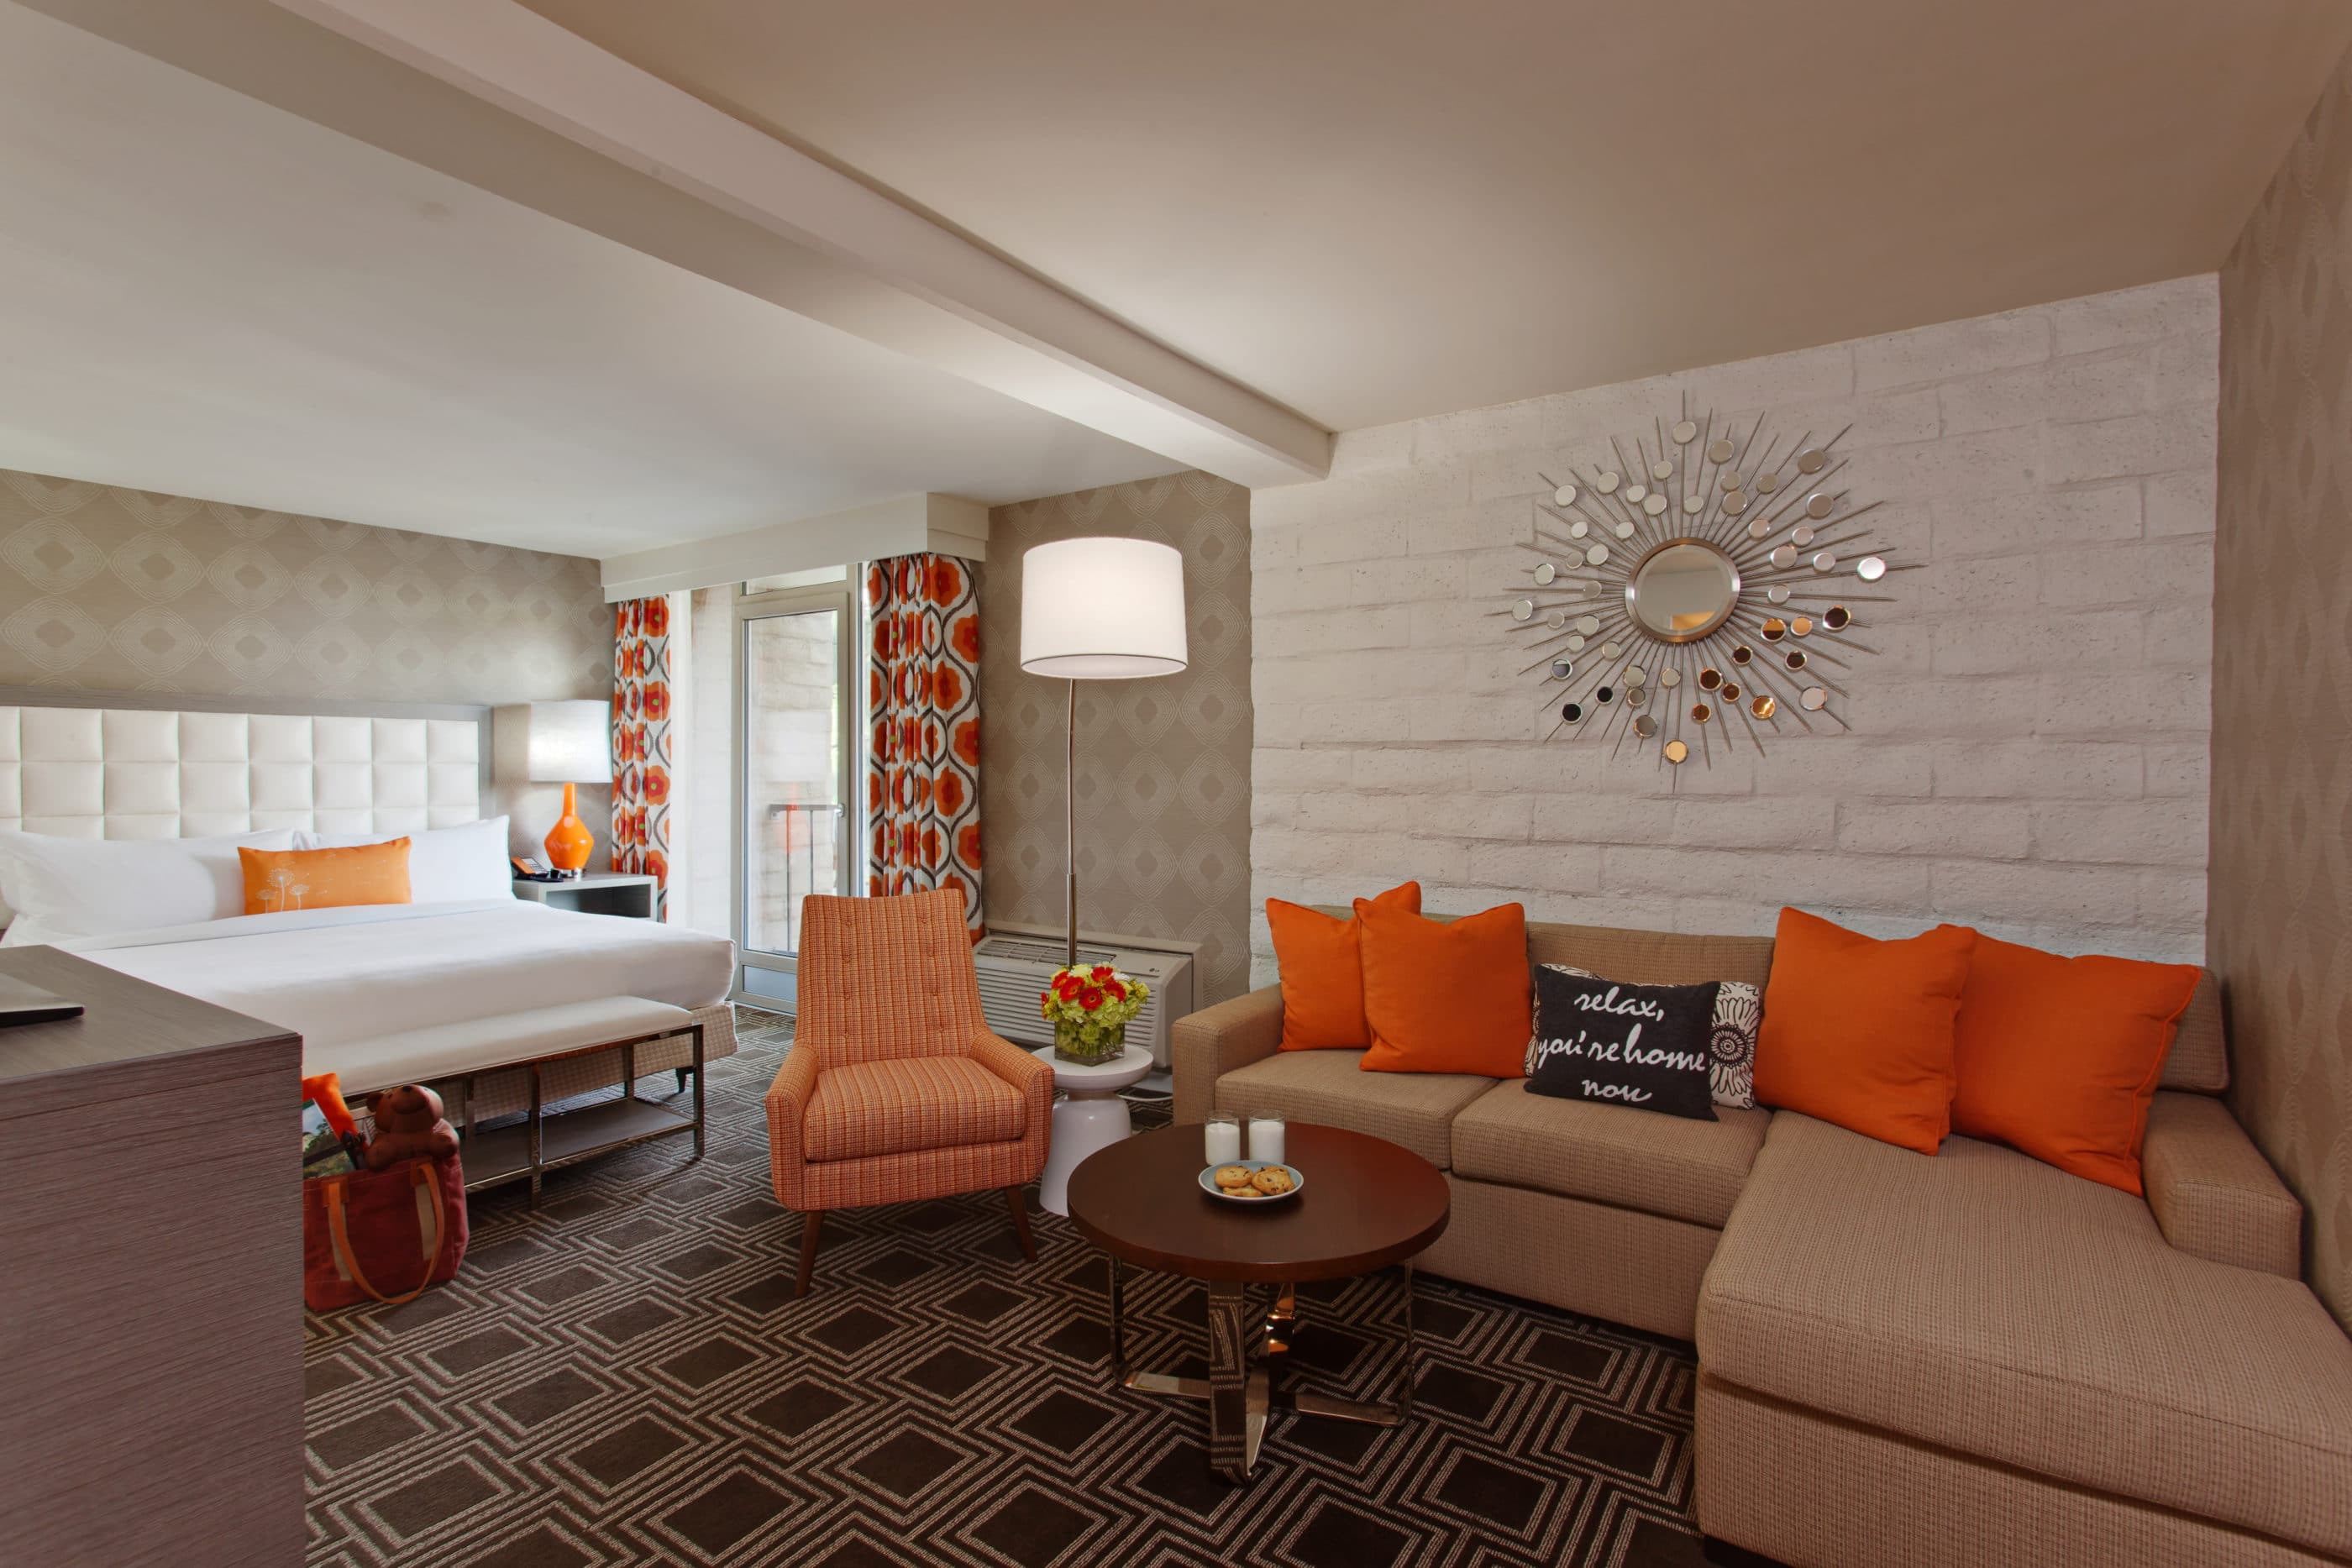 Family suite at The Garland with neutral tones and pops of orange in the typical Hollywood style.